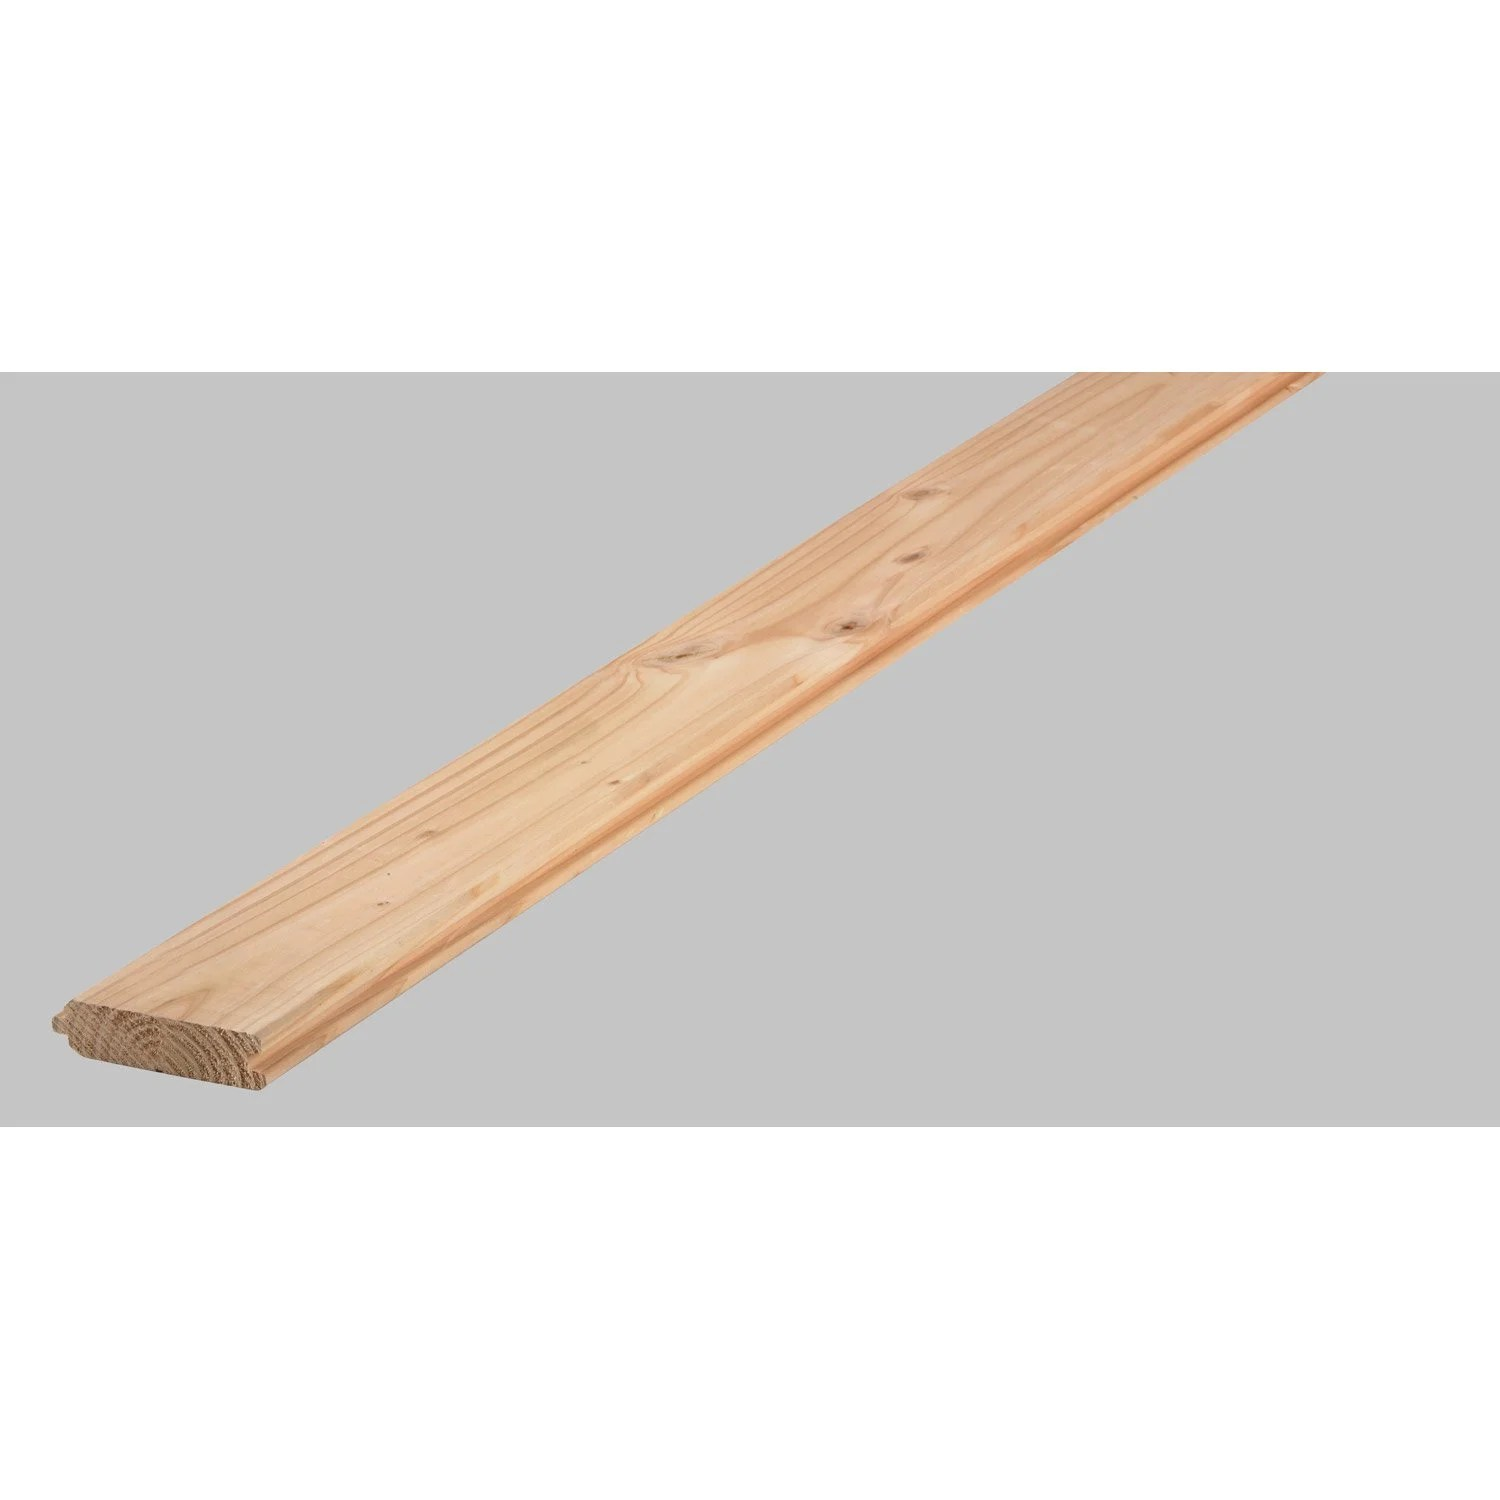 Dimension Lame De Parquet Lame à Volet Douglas Petits Noeuds Raboté 96x27 Mm Long